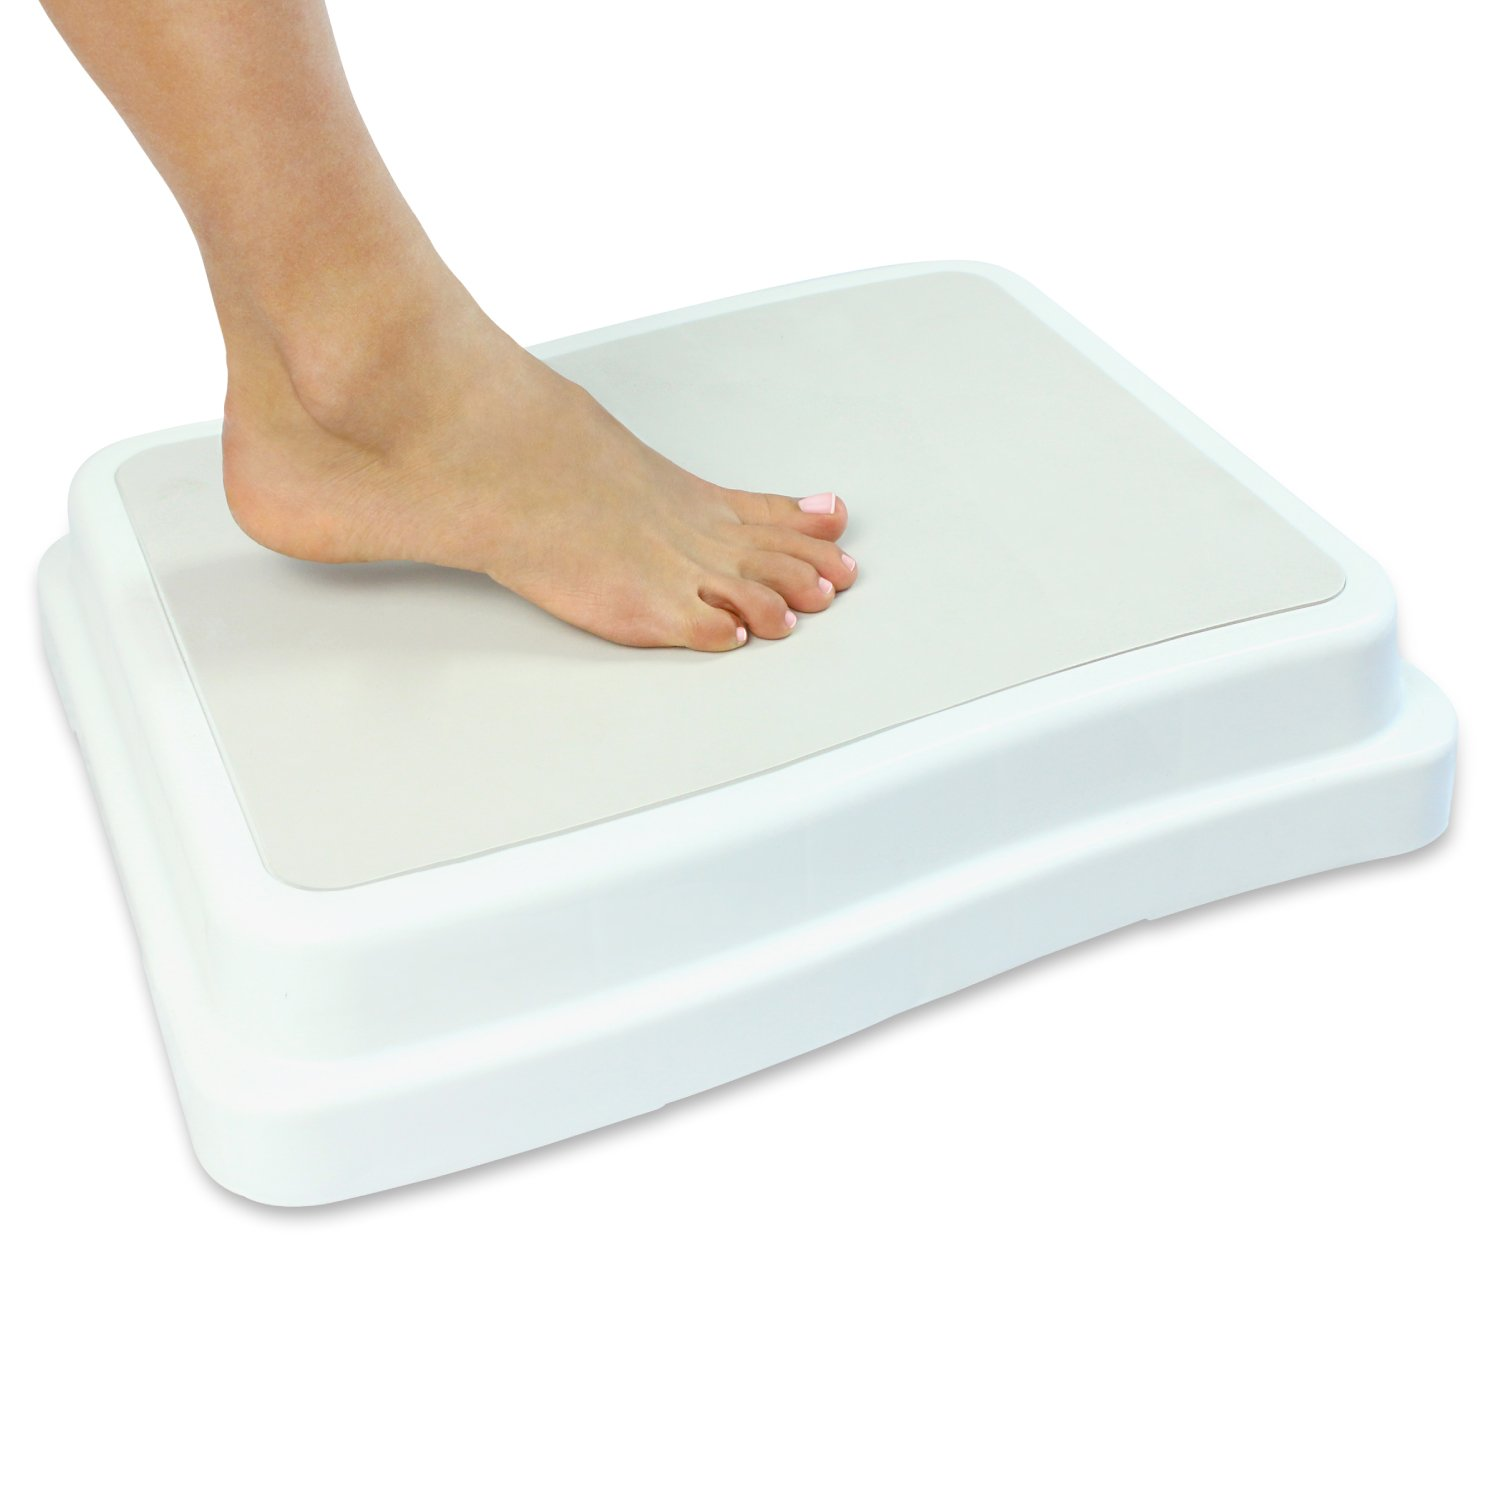 Vive Bath Step (4'') - Slip Resistant Shower Stepping Stool - Elevated Bathroom Safety Aid for Handicap, Elderly, Seniors Entering, Exiting Bathtub - Nonslip Heavy Duty Bathtub, Bed, Kitchen Elevator by Vive